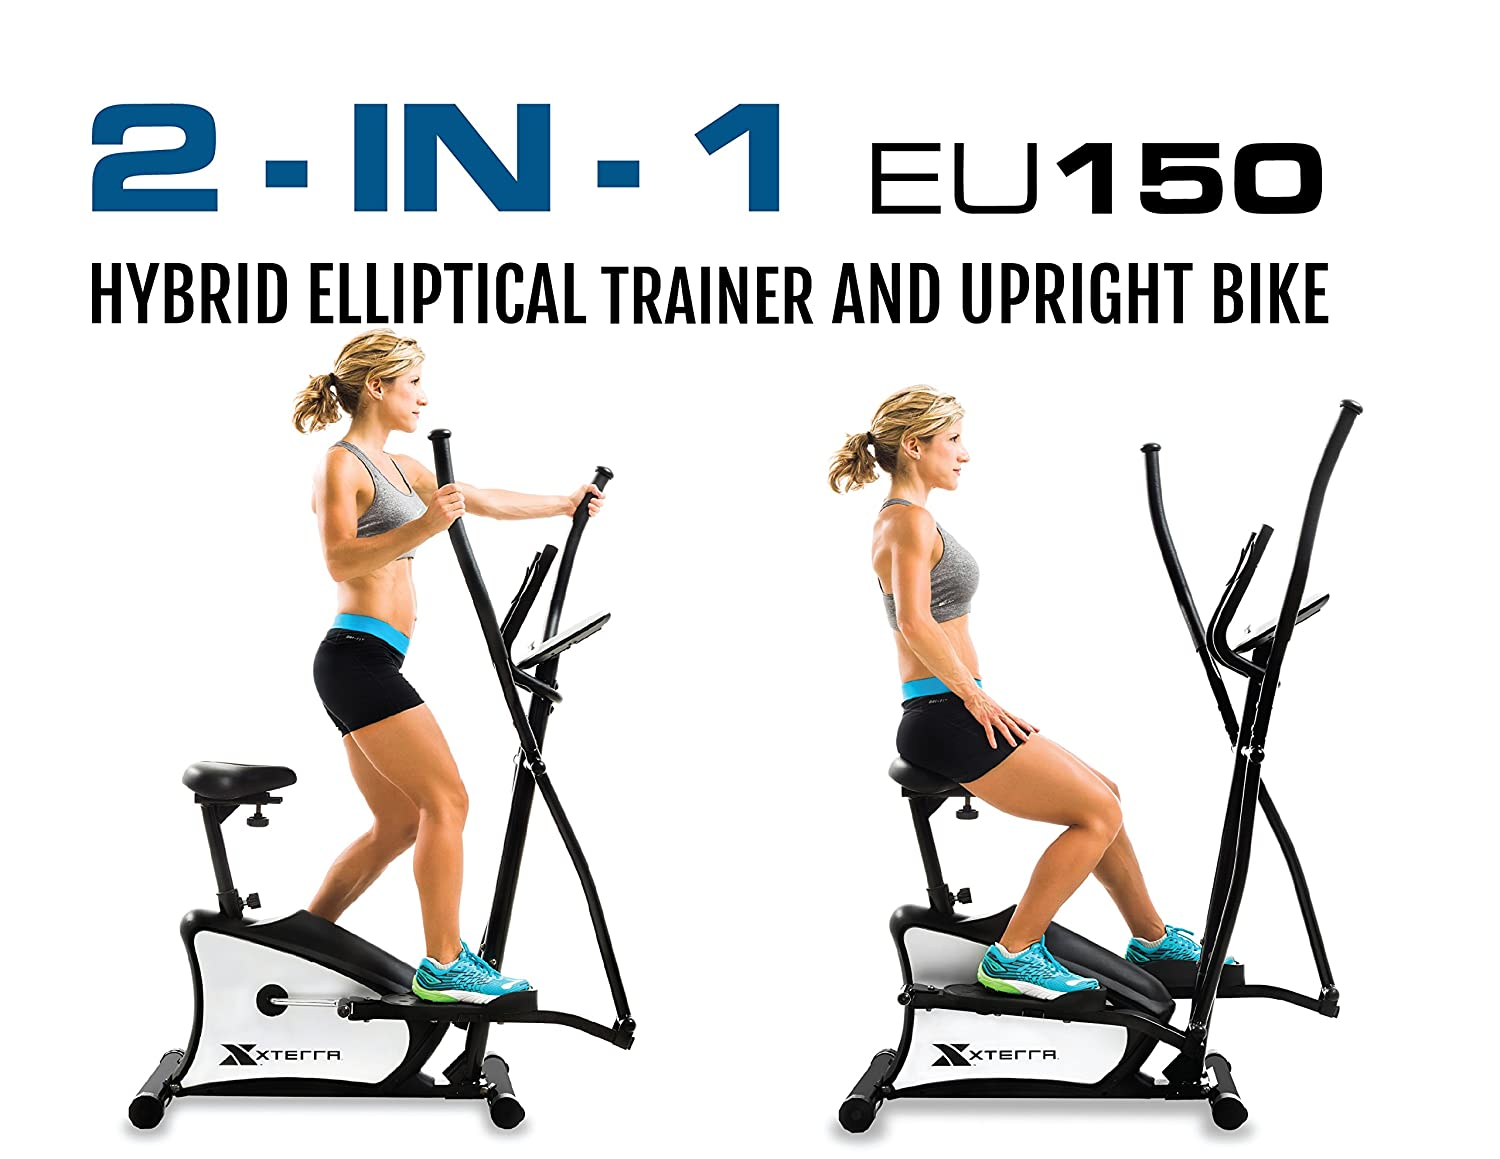 Amazon.com : XTERRA Fitness EU150 Hybrid Elliptical/Upright Bike, Black : Sports & Outdoors